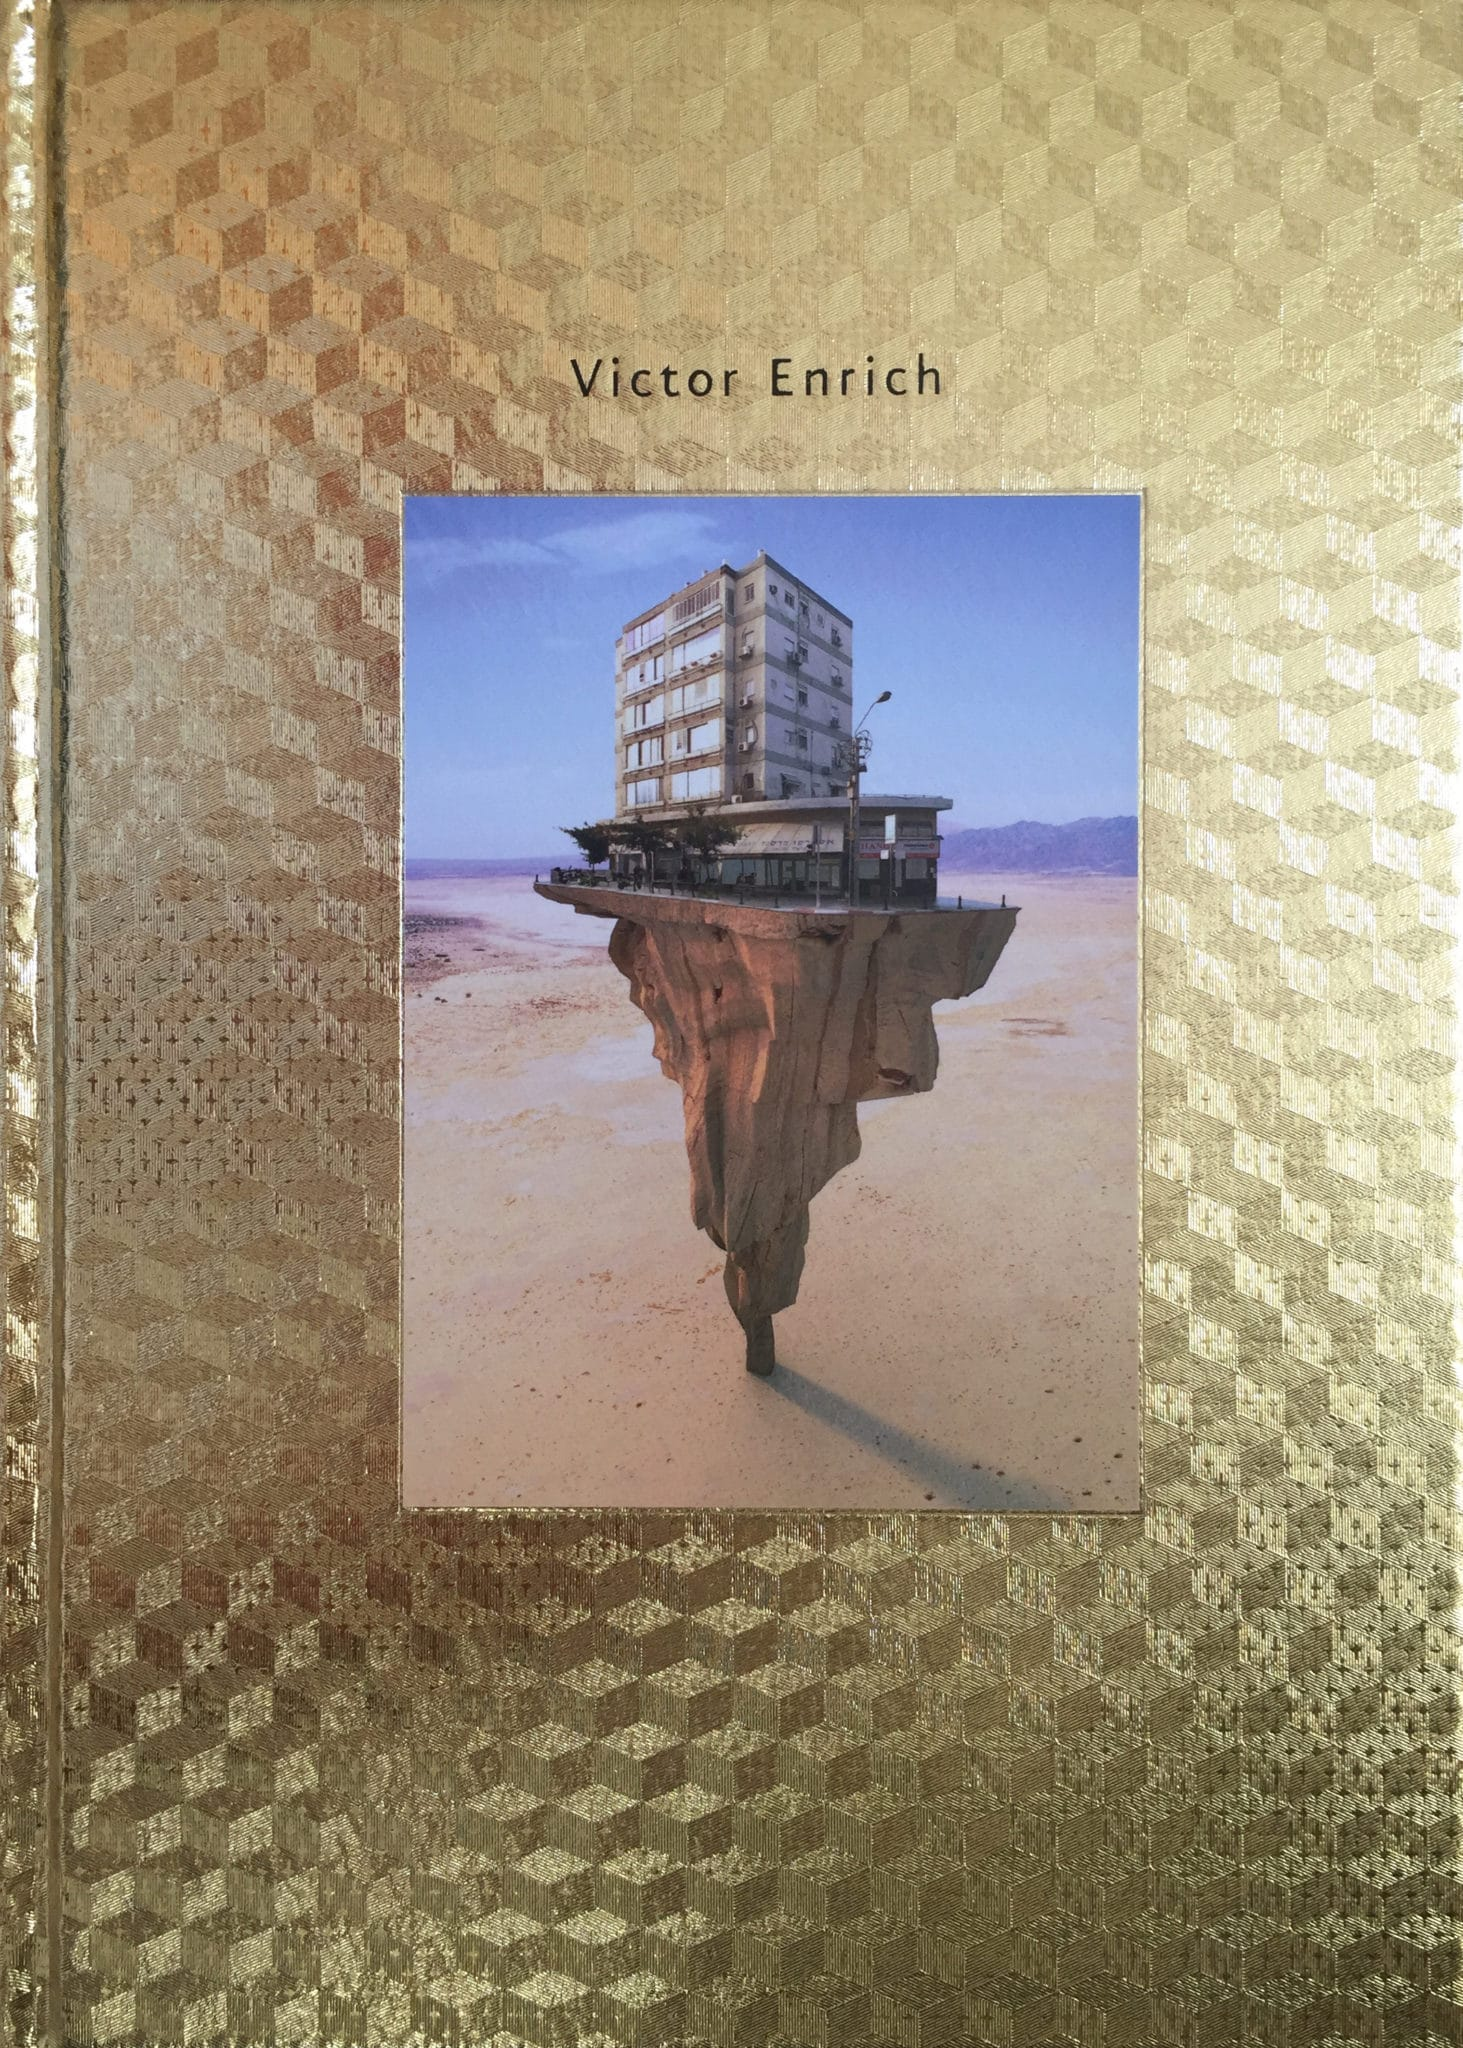 City Portraits Limited Edition Of Copies Signed C Print - City portraits surreal architecture photos by victor enrich